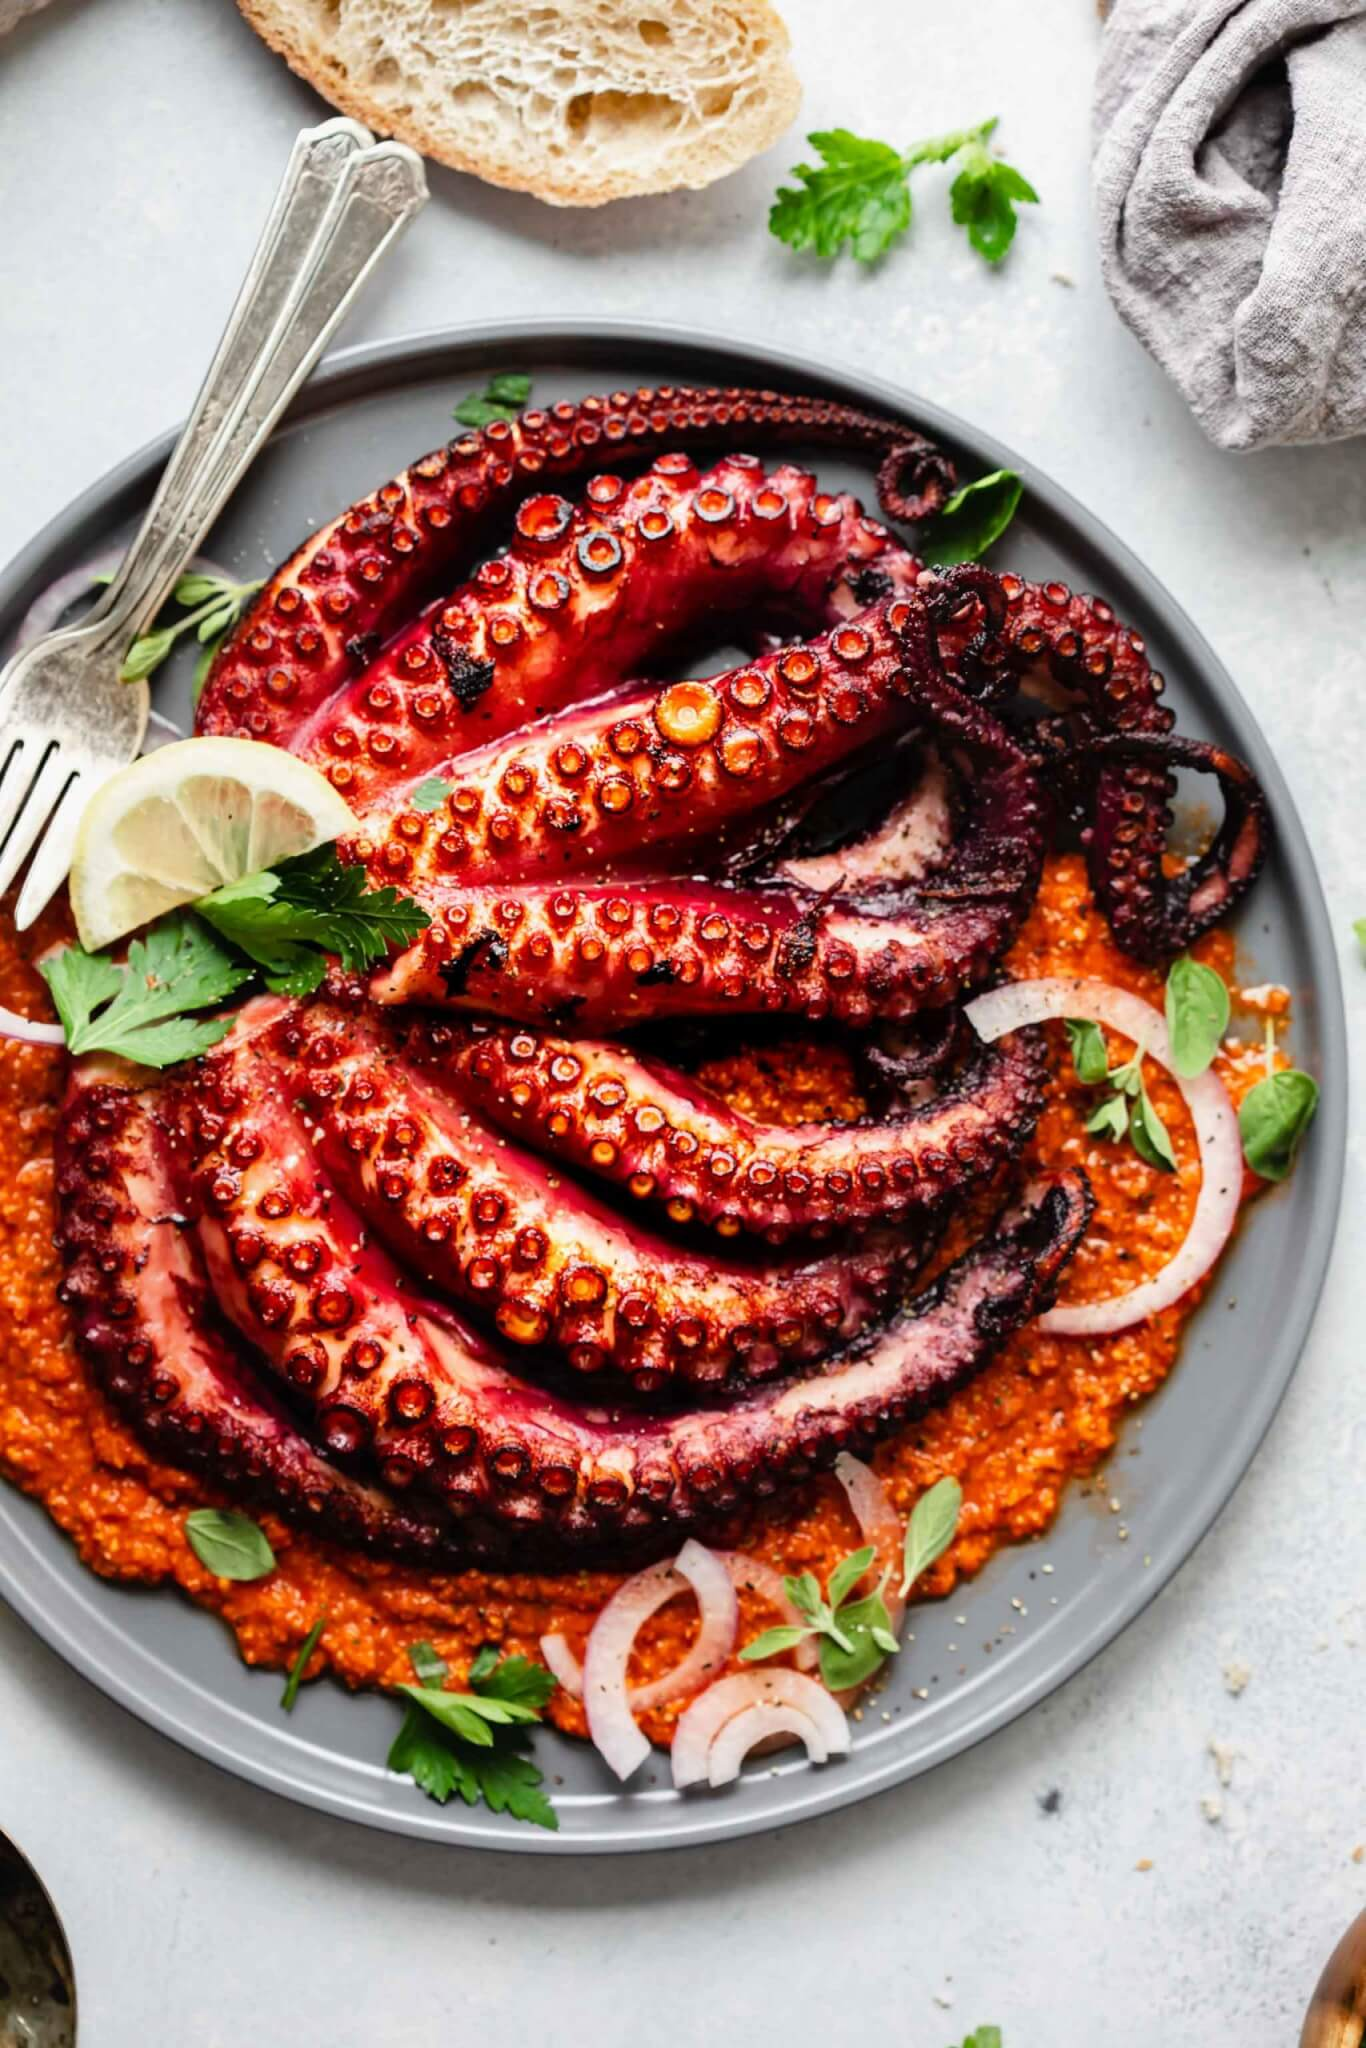 Seared sous vide octopus served on grey plate on a bed of romesco sauce.